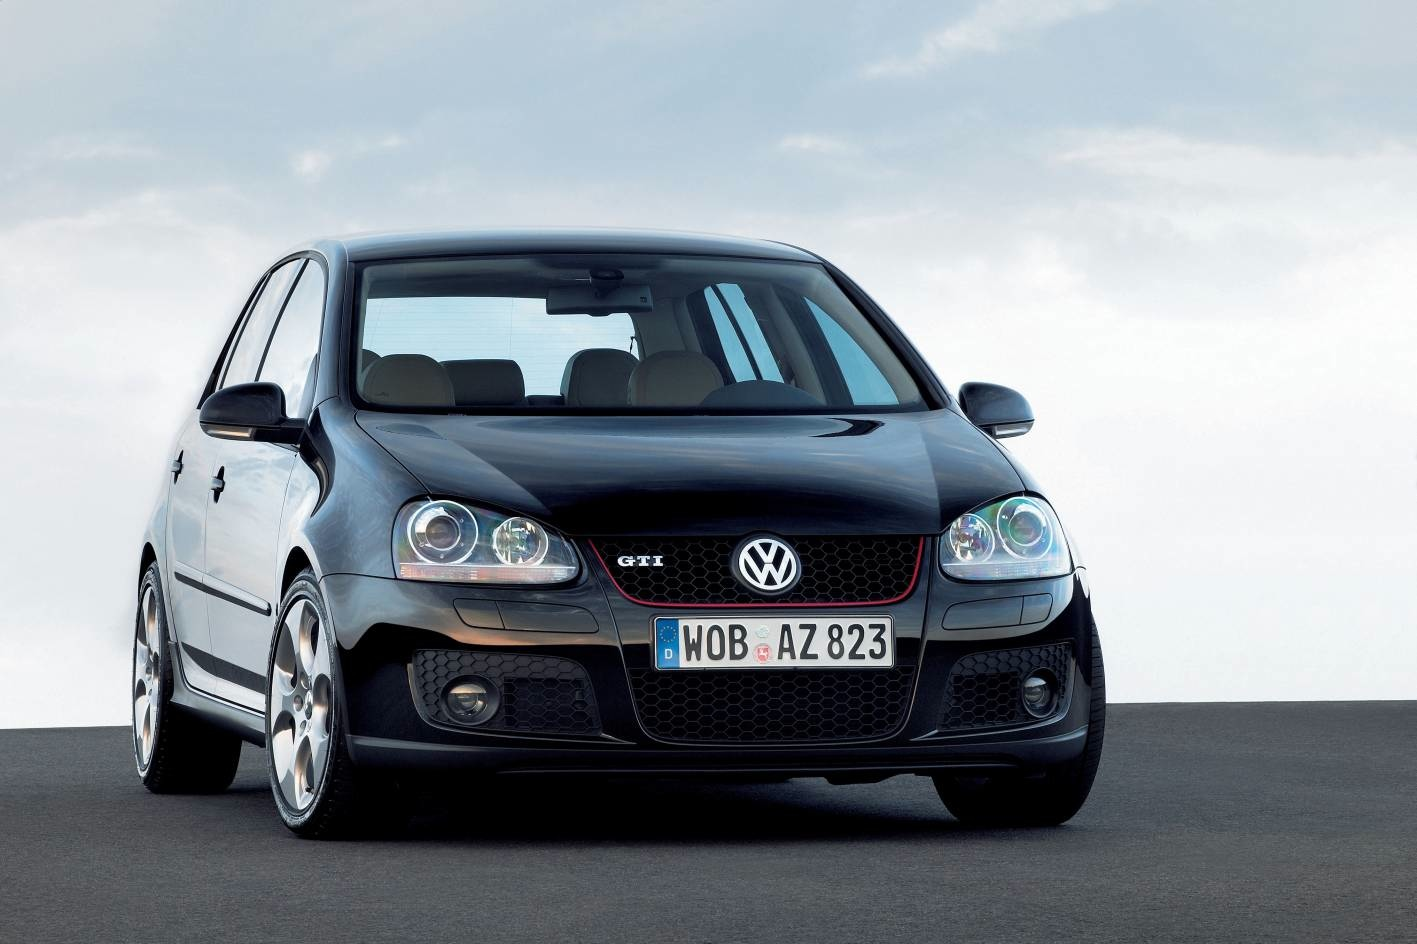 2006 vw golf gti mkv. Black Bedroom Furniture Sets. Home Design Ideas